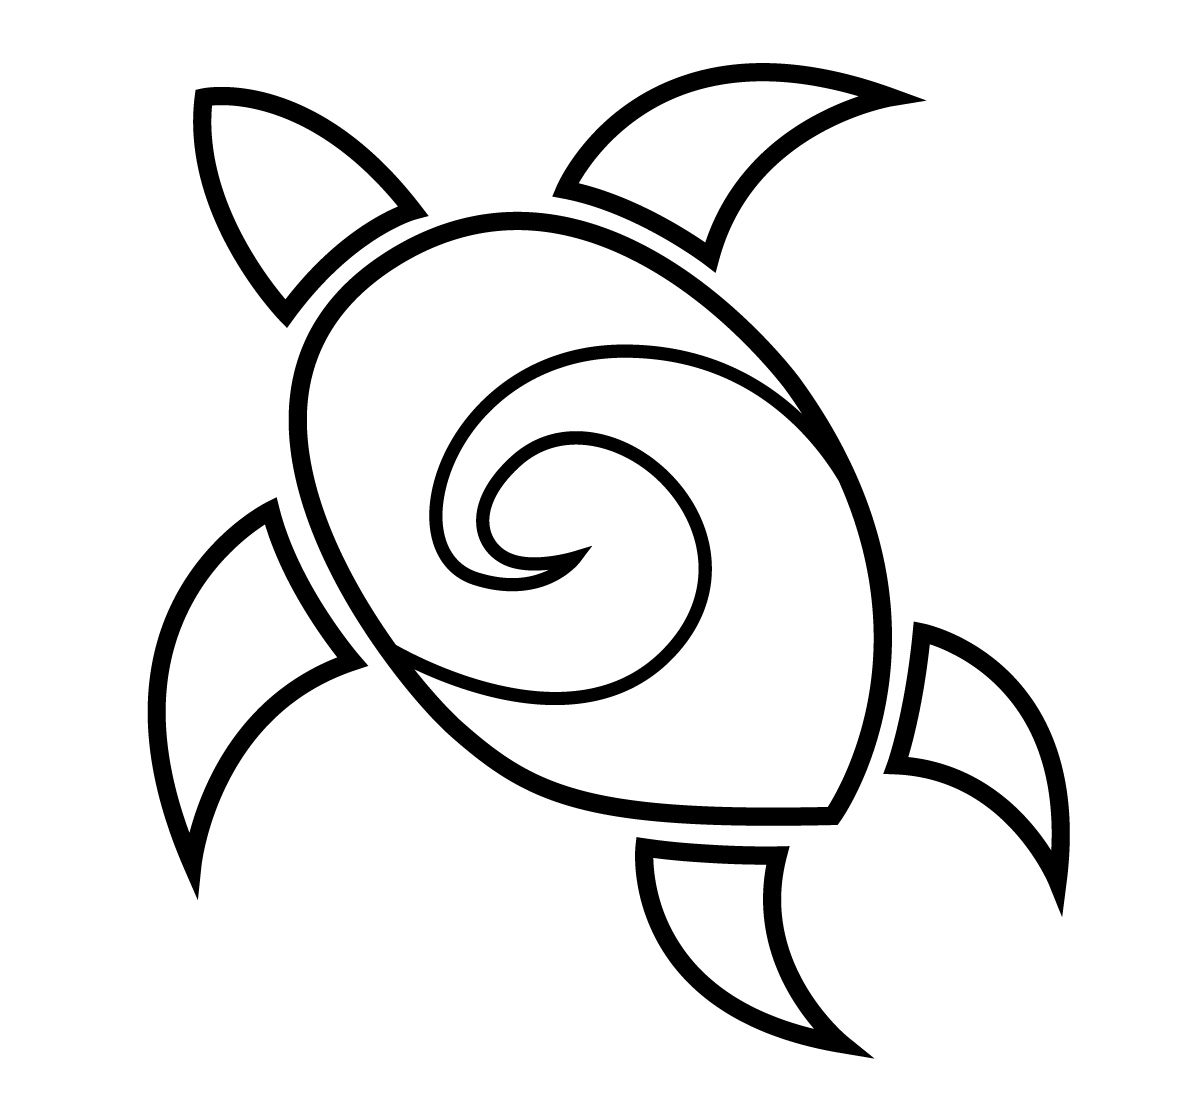 Cool Simple Designs easy drawing - google search | drawing ideas/projects | pinterest